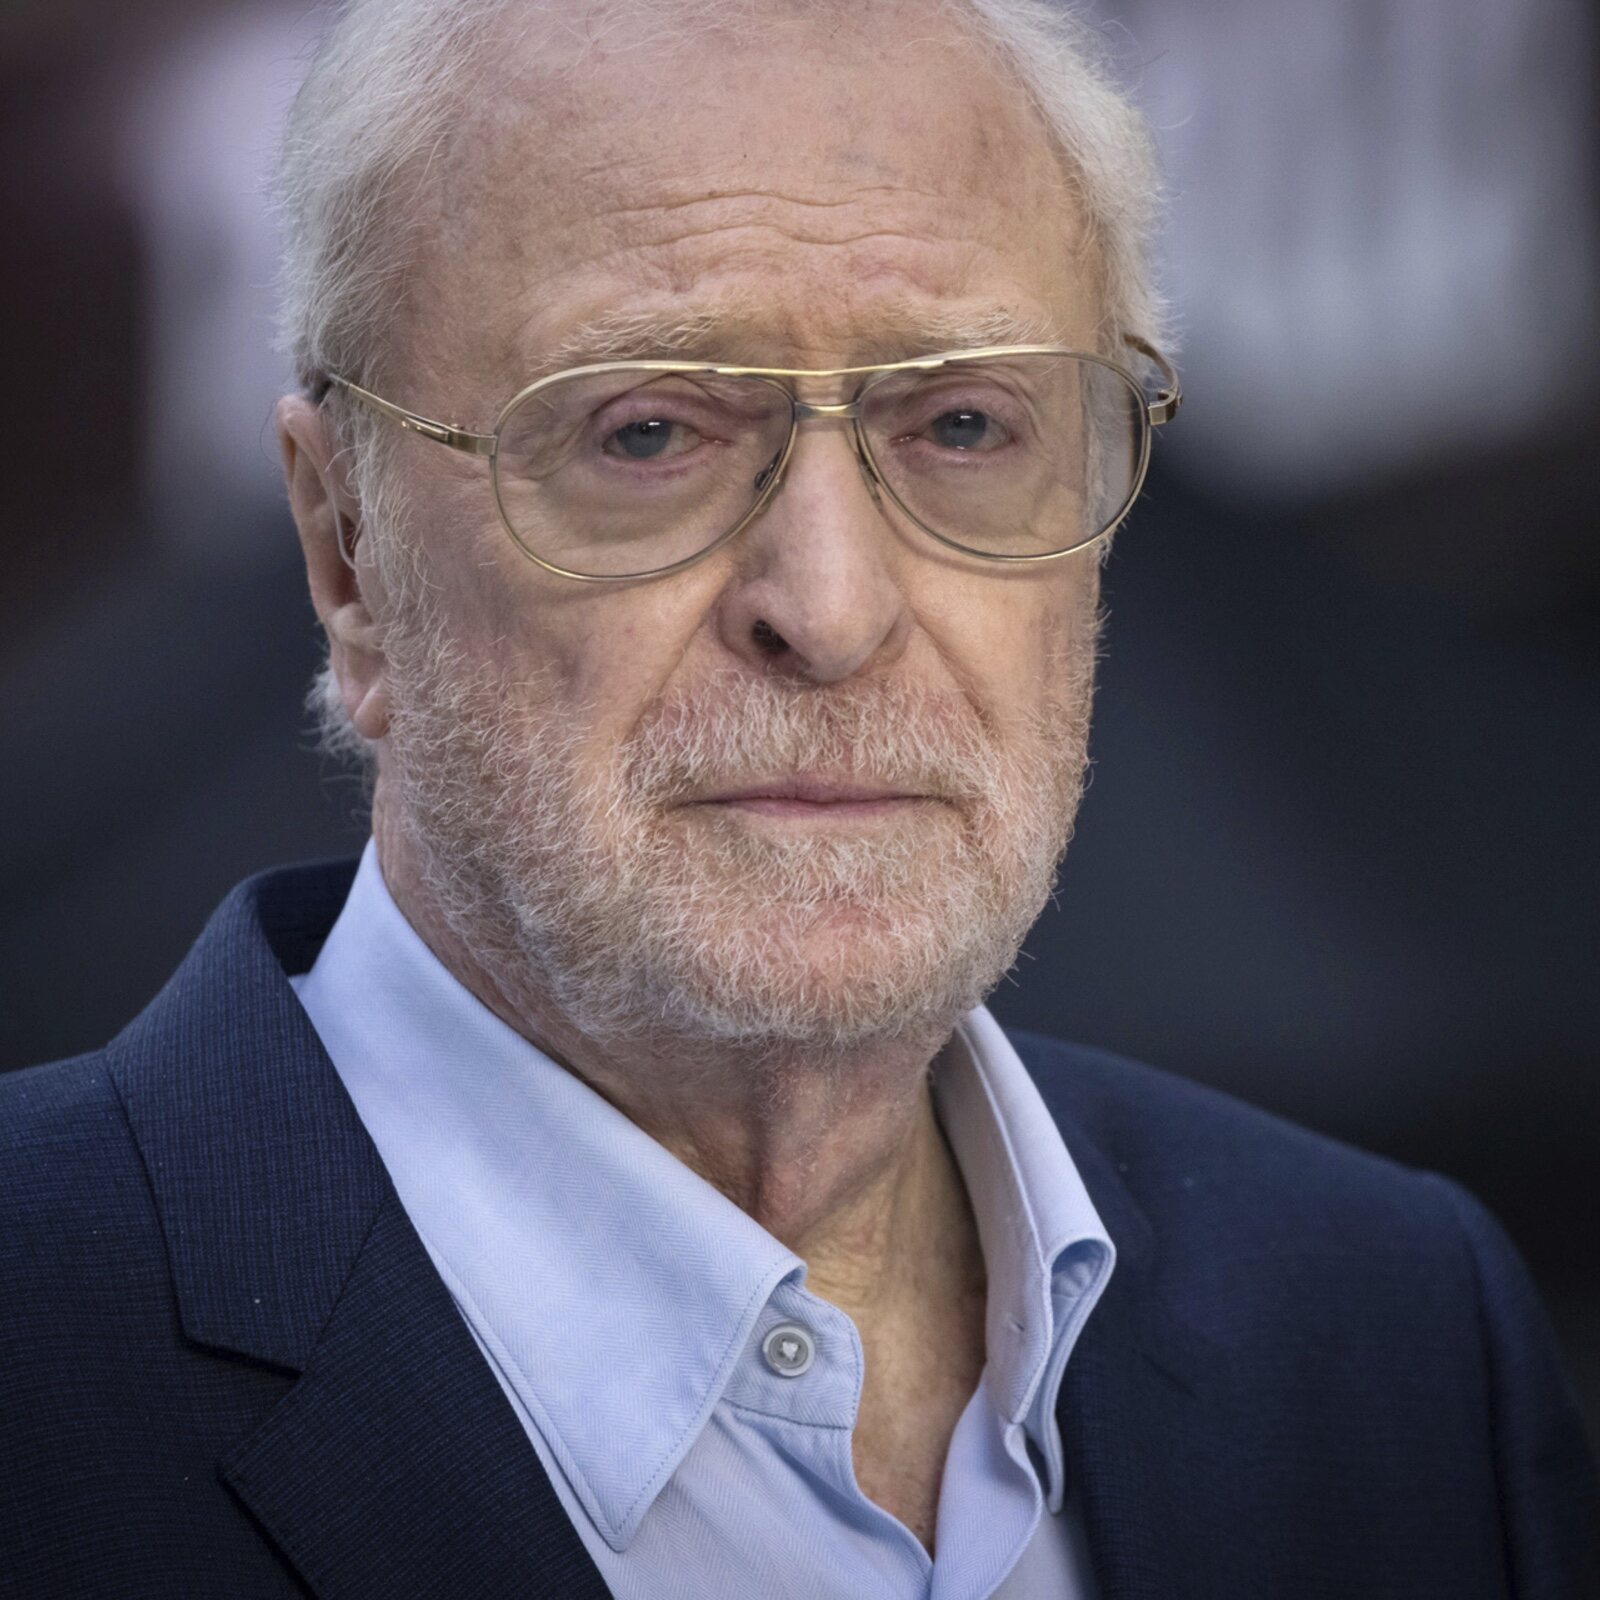 Michael Caine spent 8 years trying not to blink